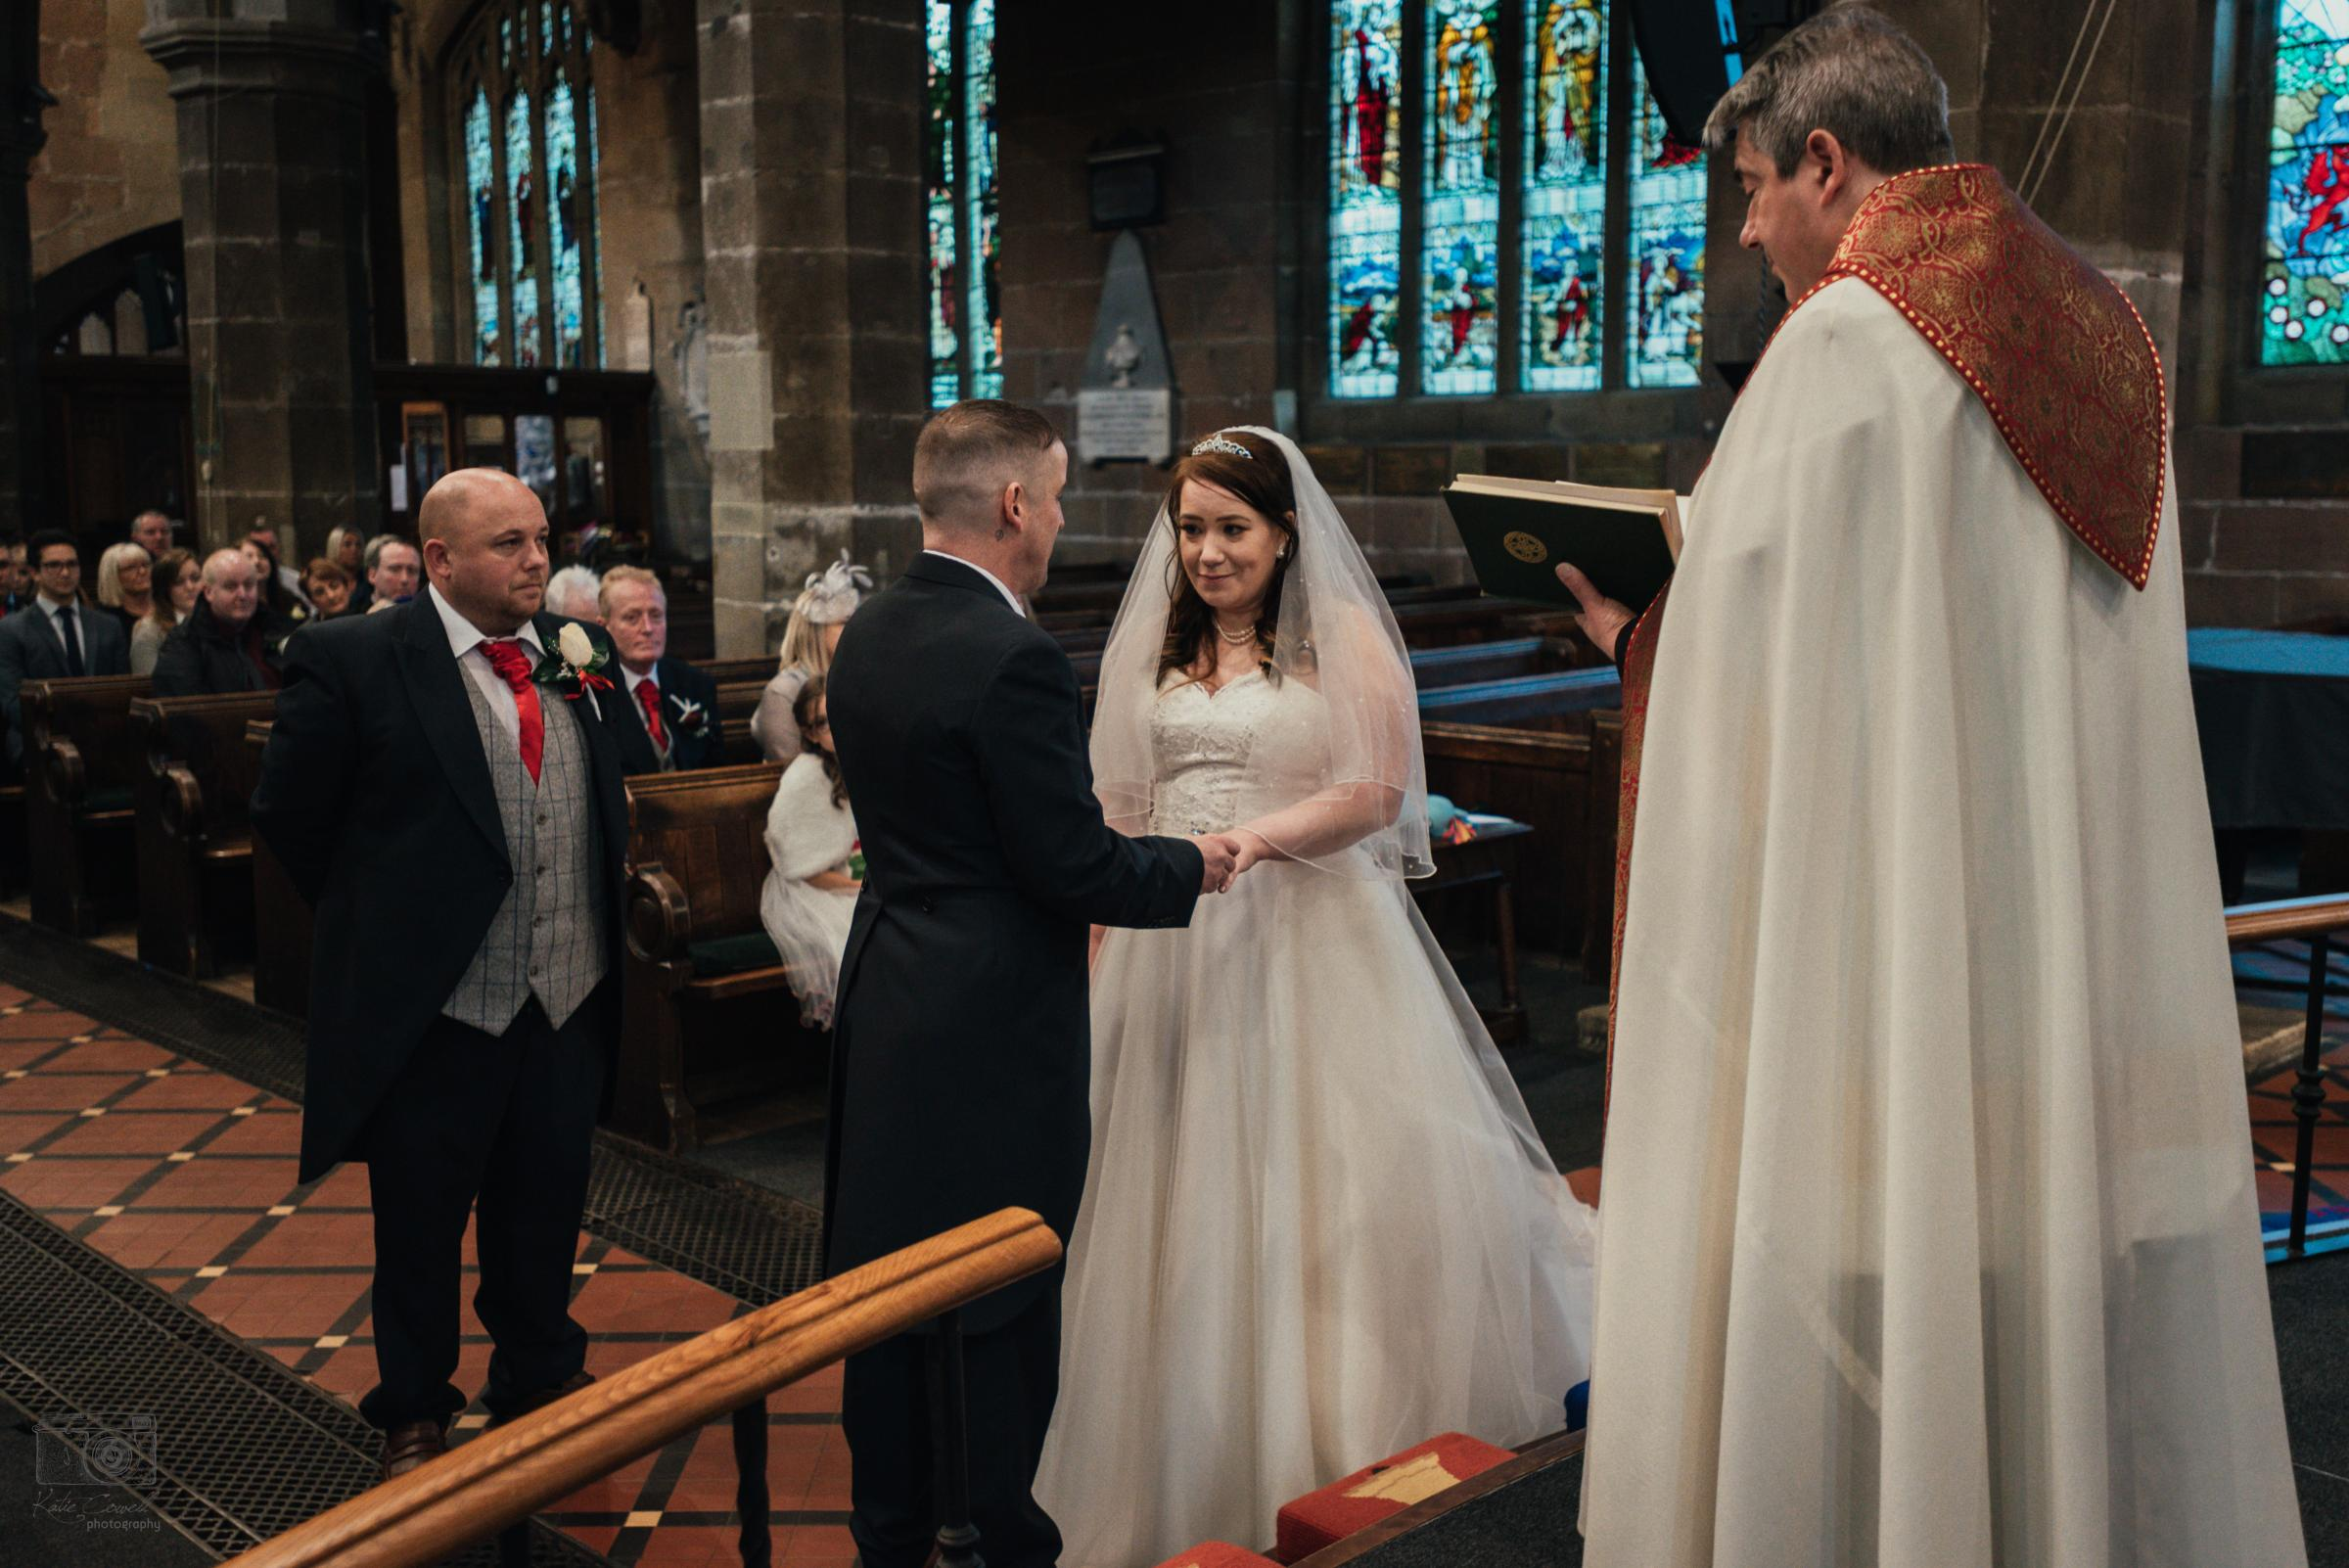 Tying the knot: Couple enjoy big day at St Giles Church in Wrexham